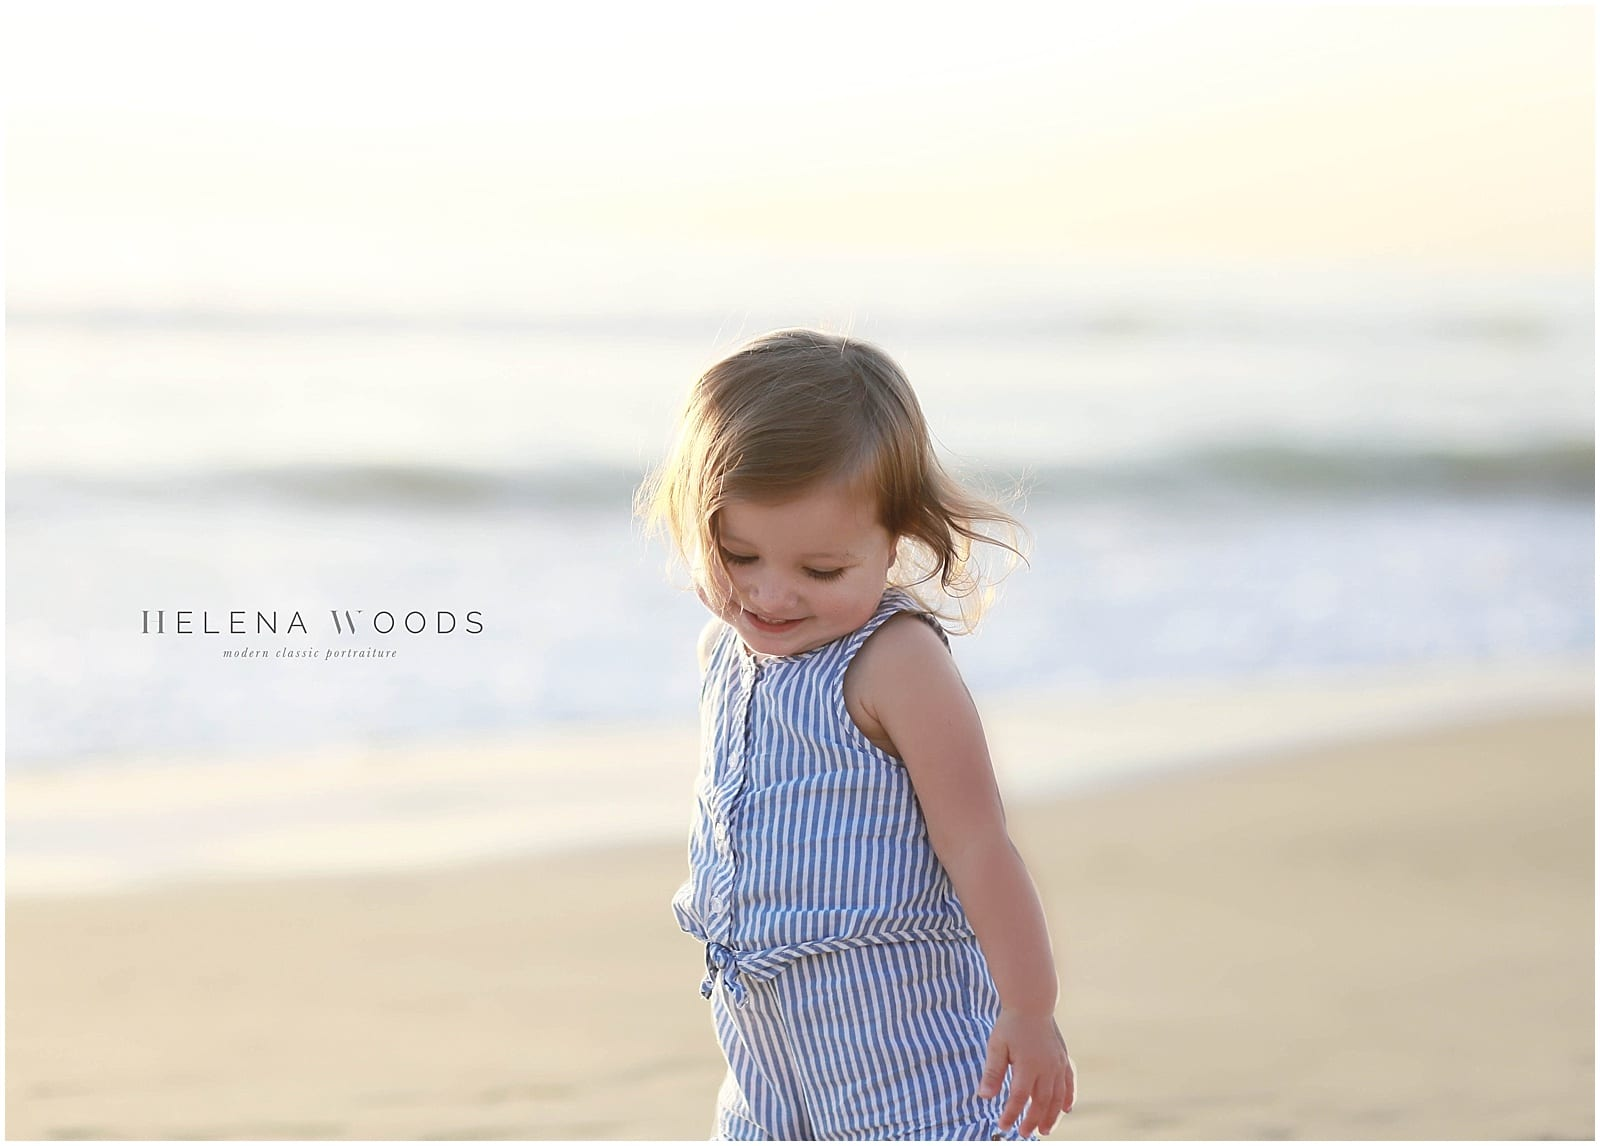 Helena Woods Connecticut Greenwich New york City Manhattan Beach Photographer. Children's and Family beach photography, why photographing kids at the beach is the best. Fairfield County Connecticut Children's and Baby Photographer, serving families in NYC and the south of France